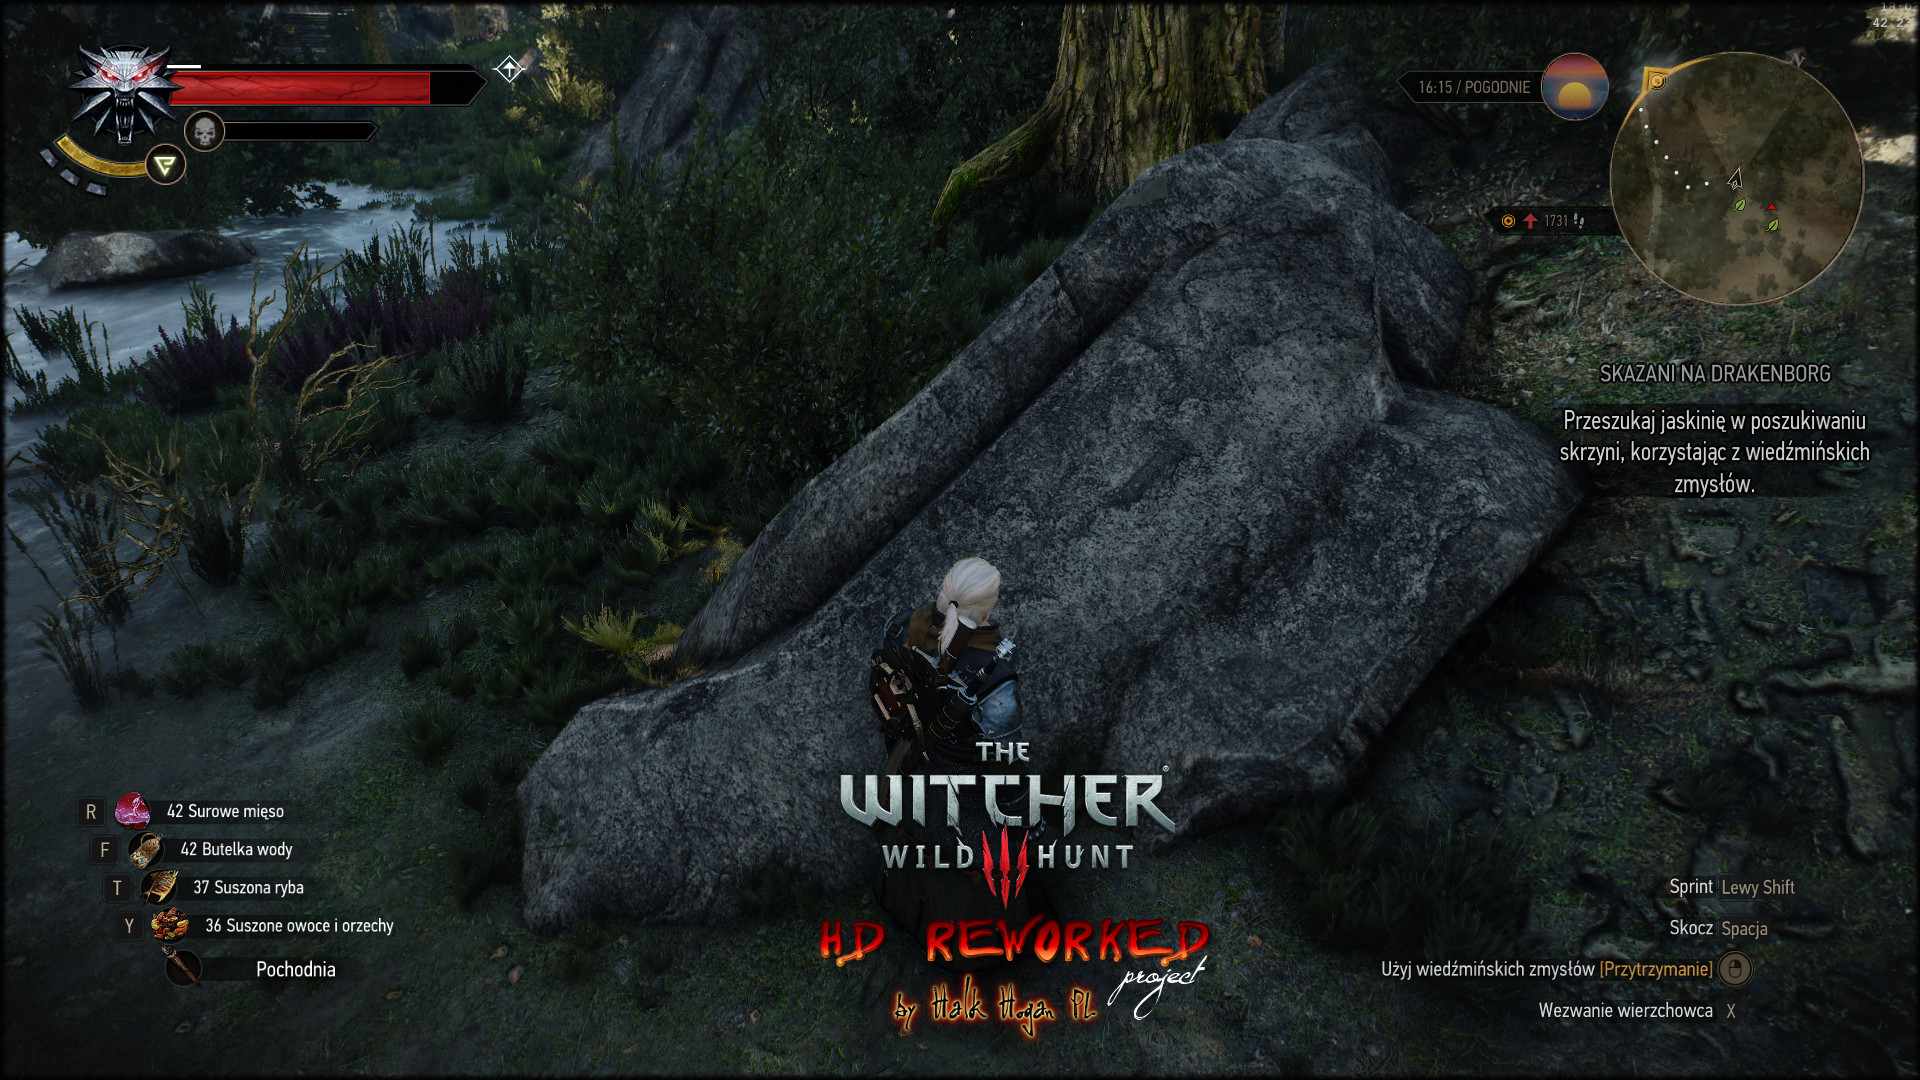 The Witcher 3: Wild Hunt High Res Texture mod and Draw